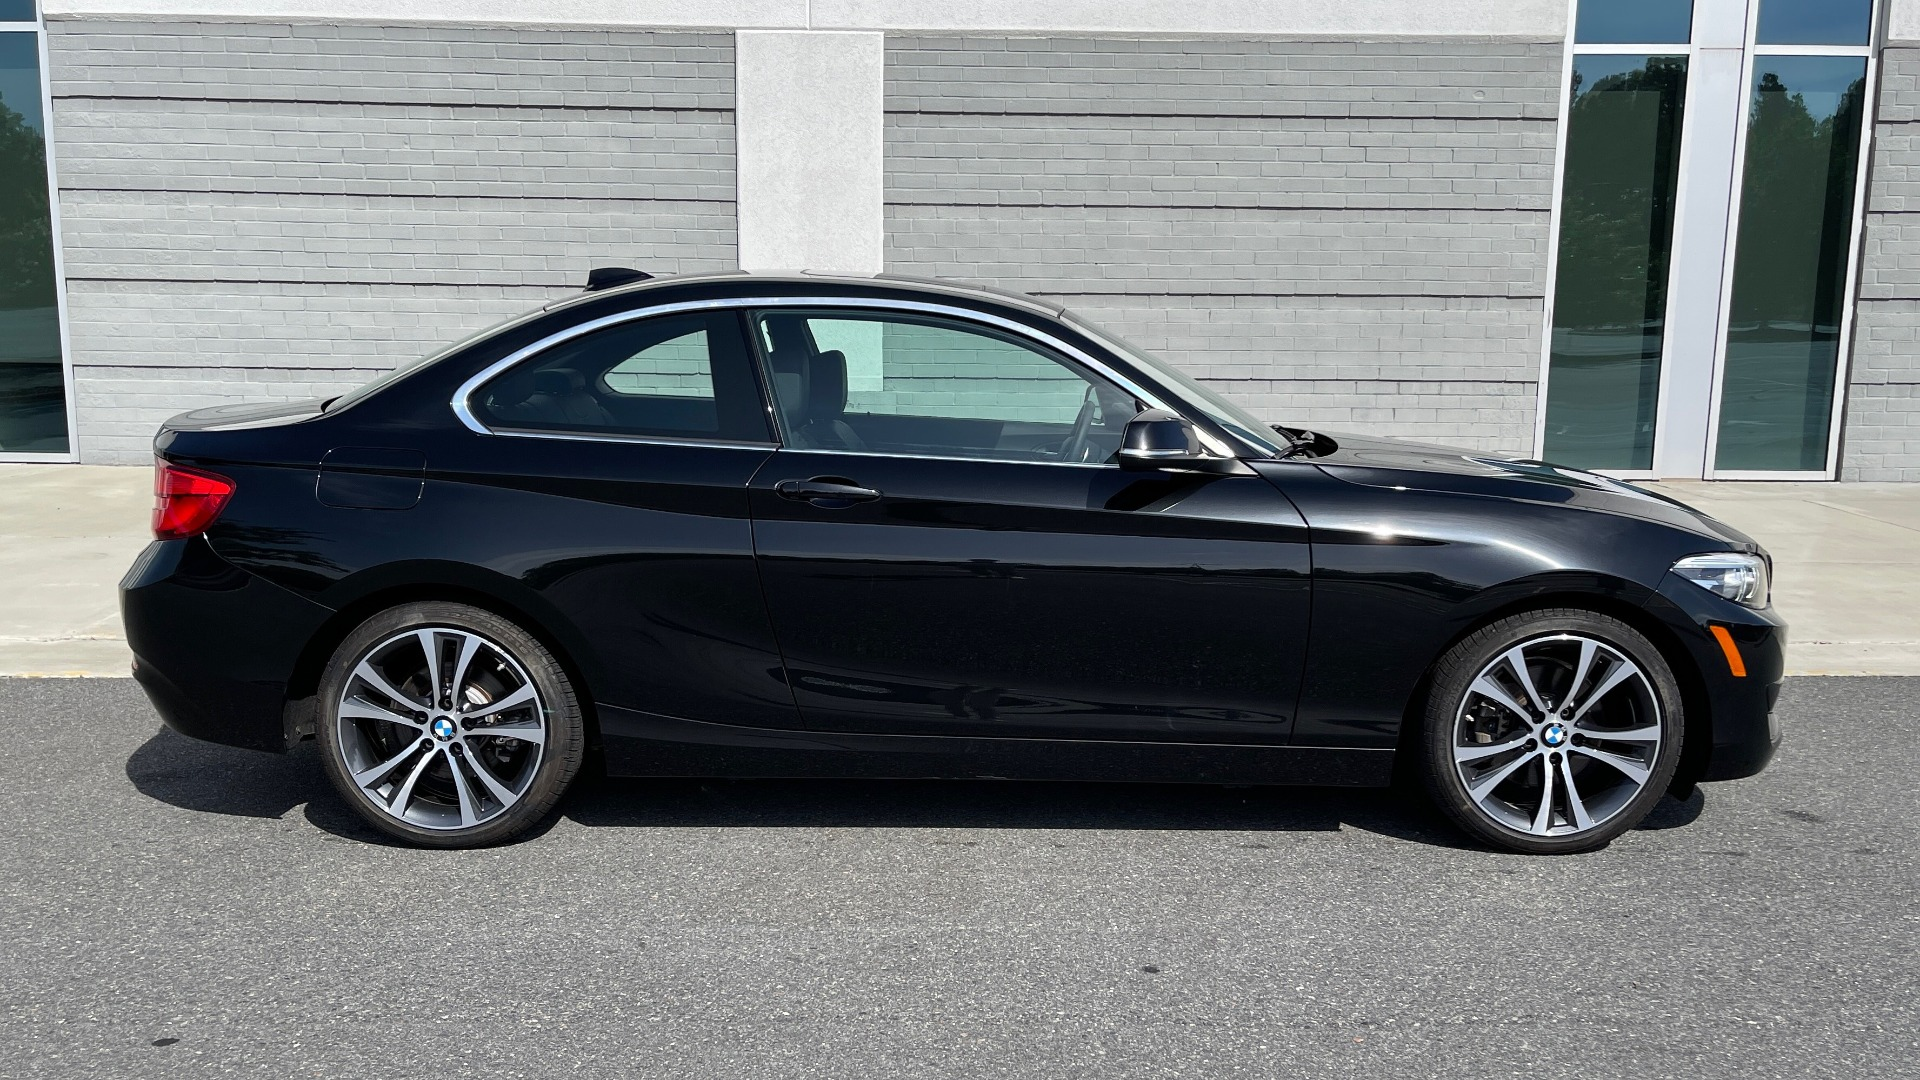 Used 2018 BMW 2 SERIES 230I XDRIVE PREMIUM / CONV PKG / NAV / SUNROOF / REARVIEW for sale $30,795 at Formula Imports in Charlotte NC 28227 7